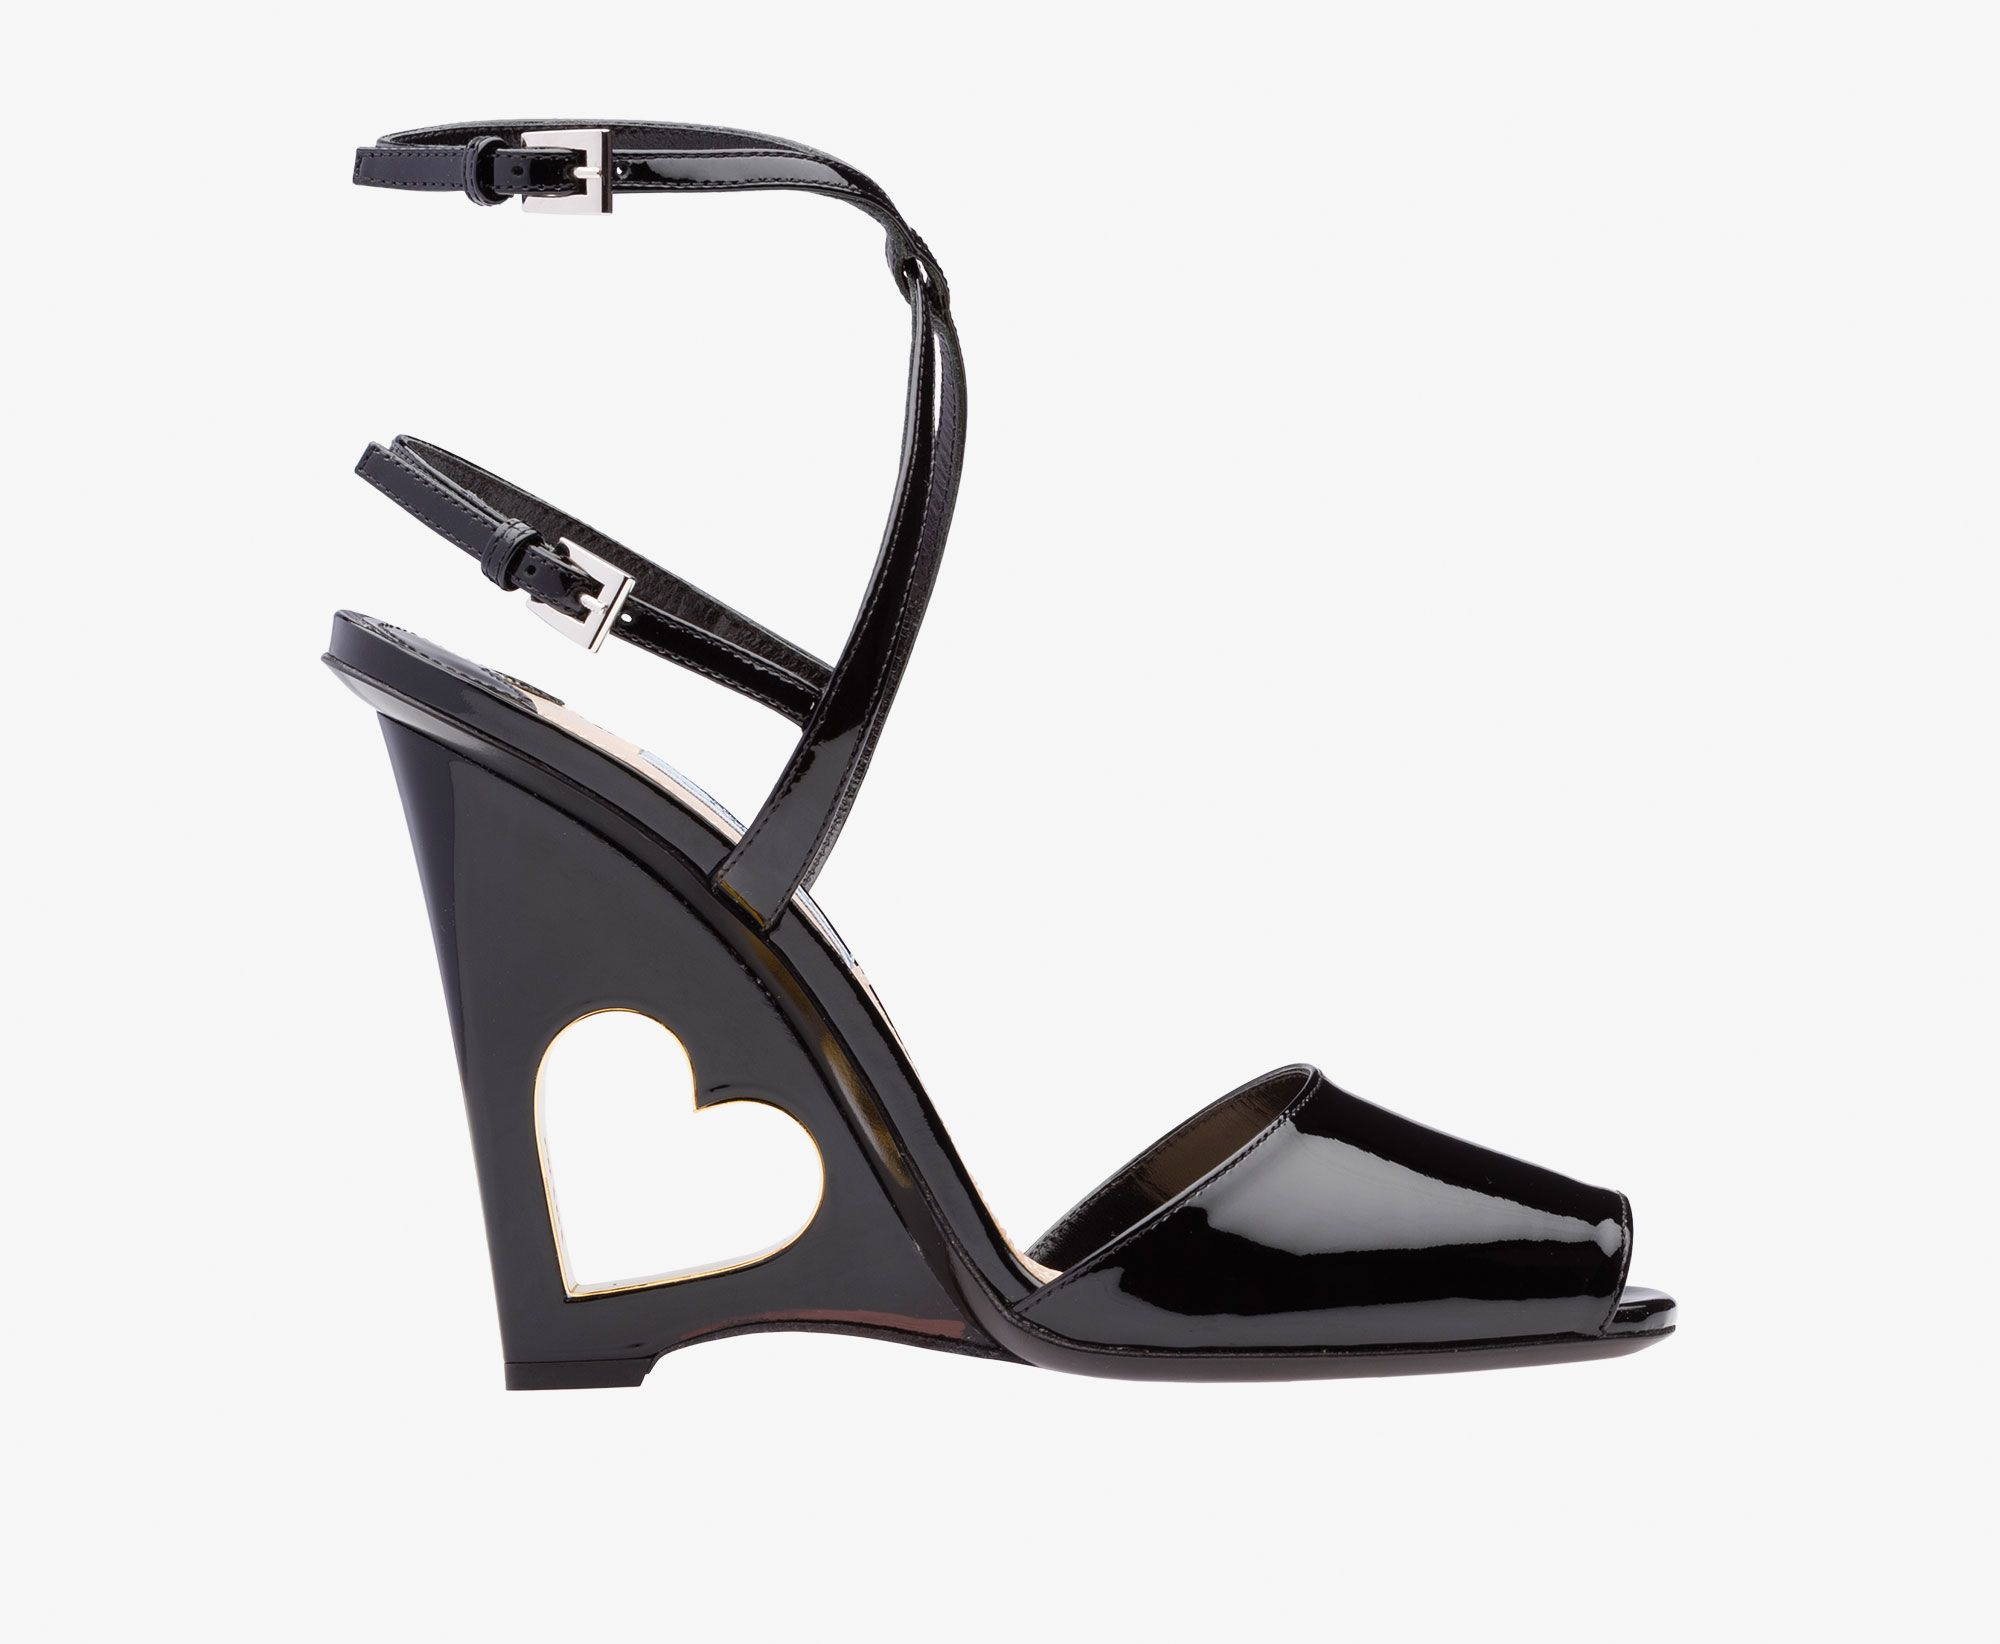 0a485450f1e Patent leather sandal Crisscross ankle strap Light wedge engraved with  heart motif inserted underneath the sole 110 mm heel